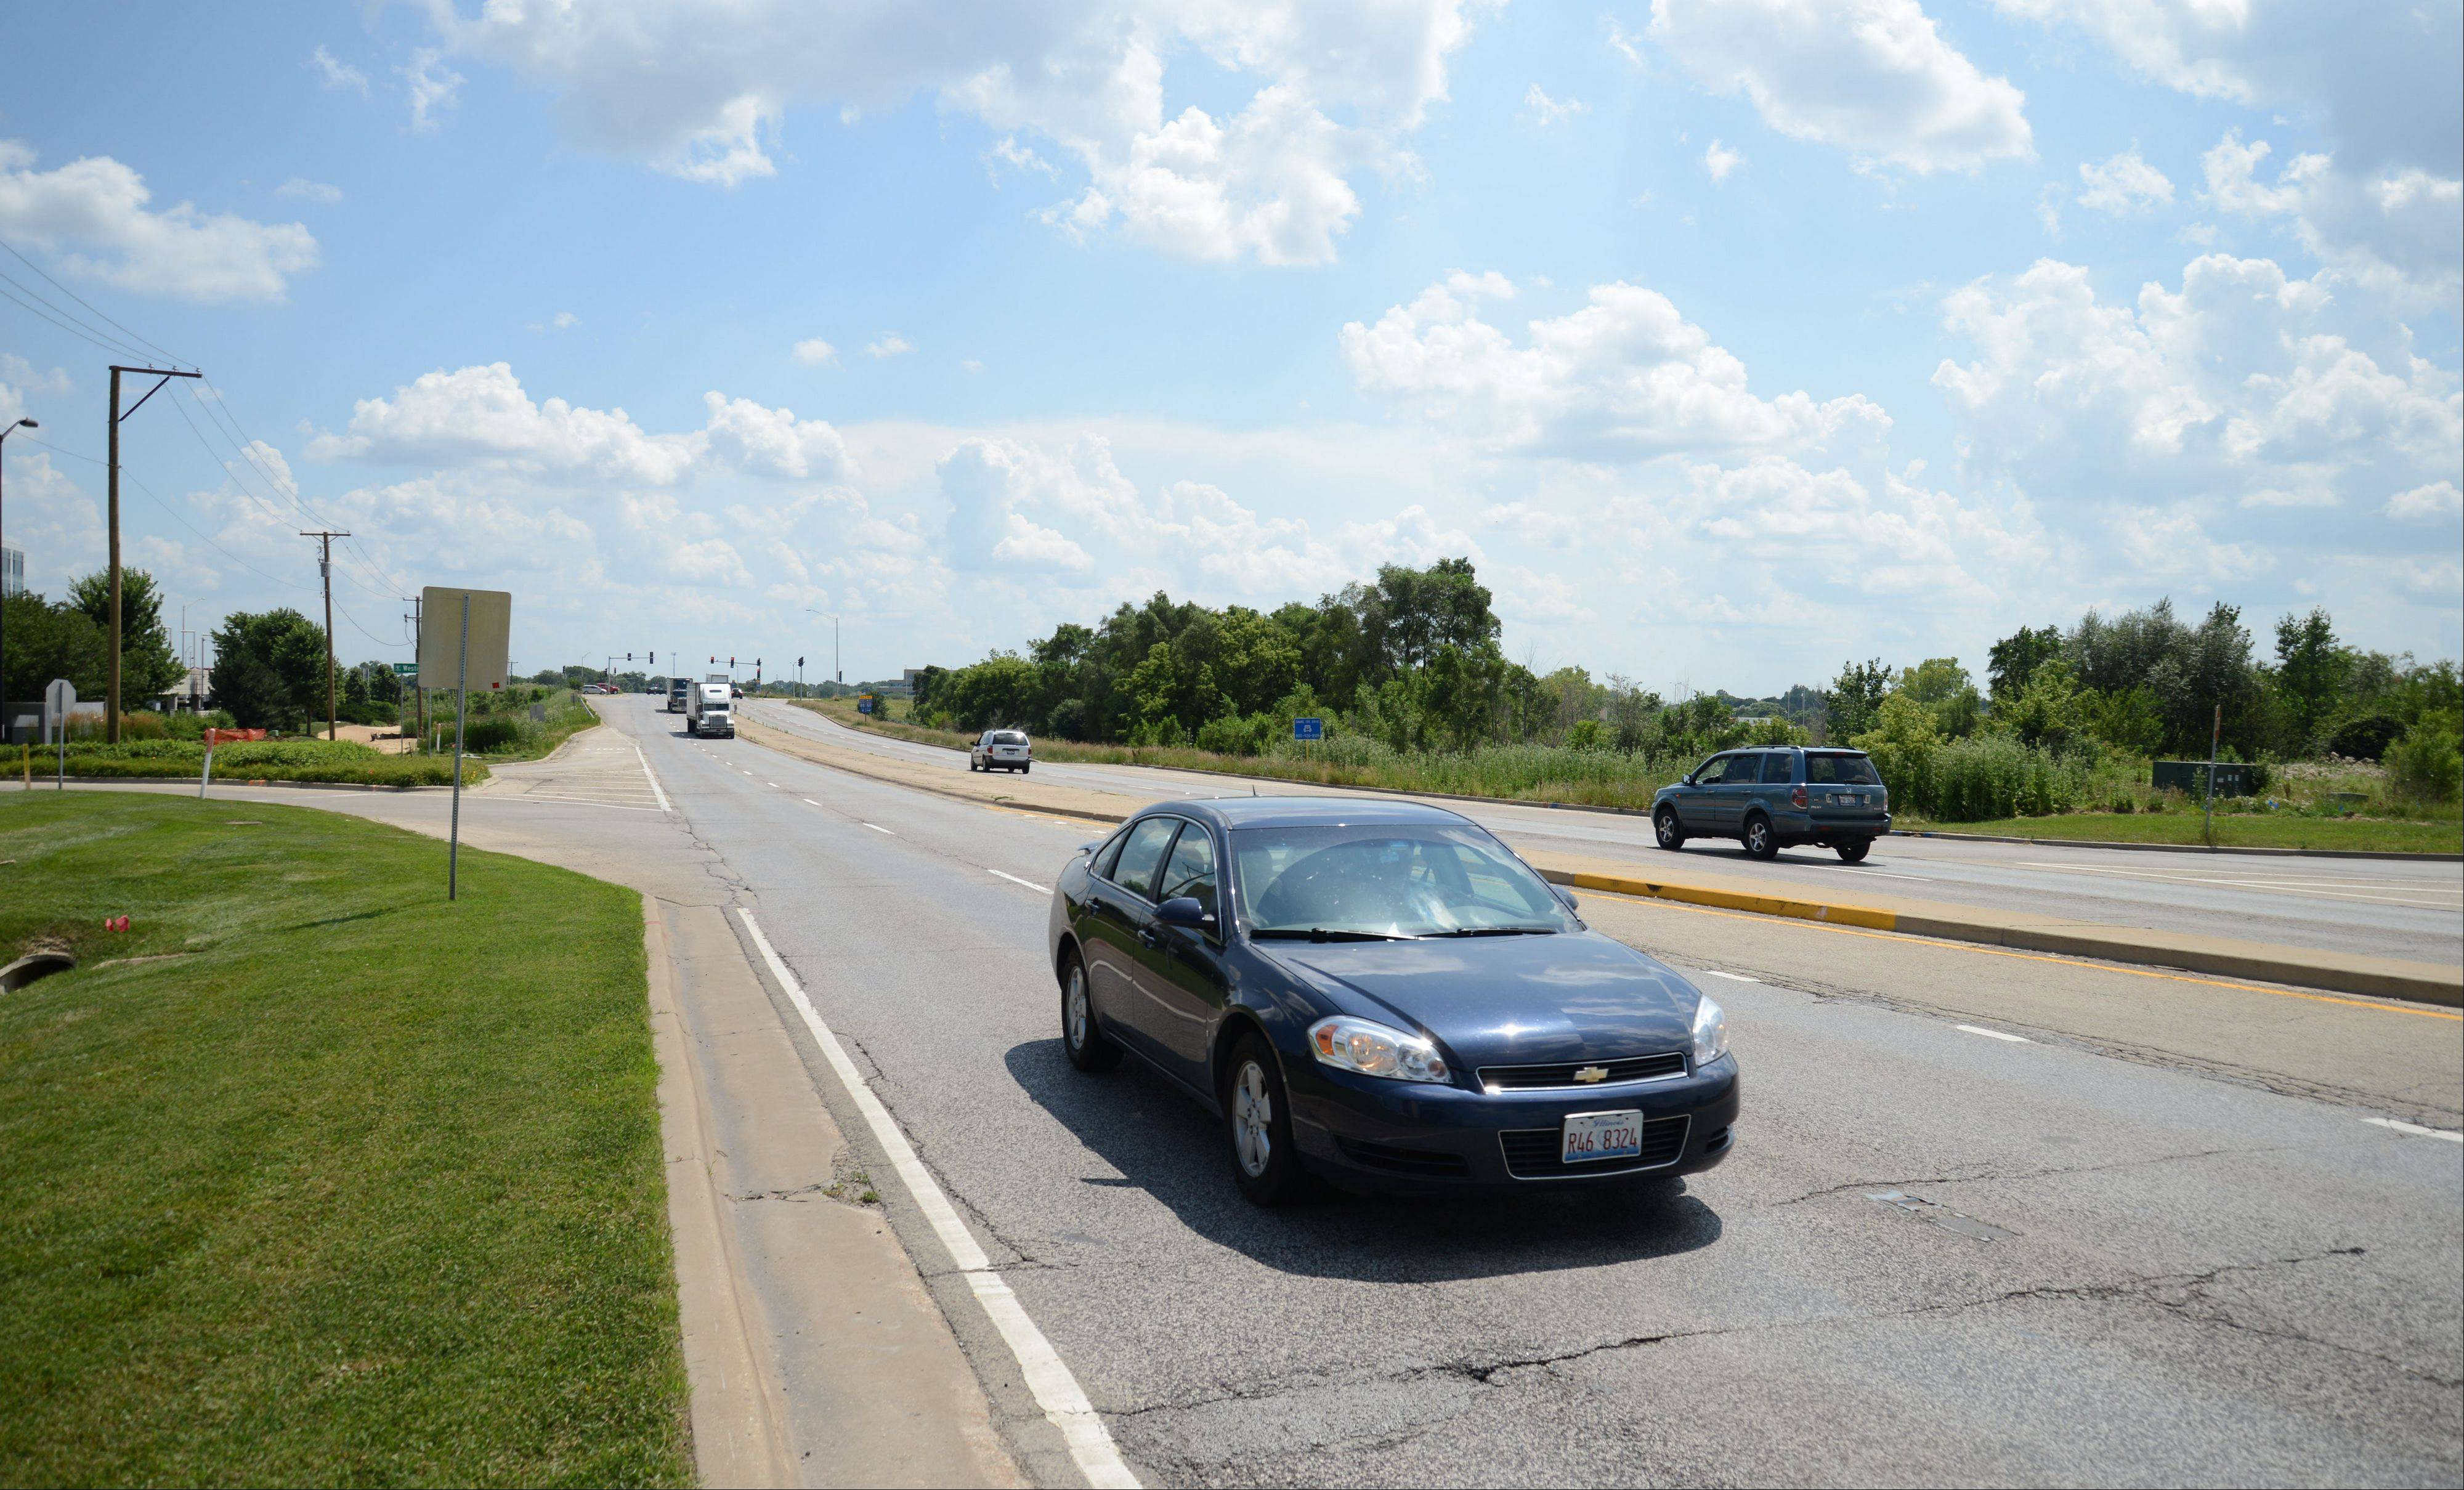 "One of the first ""diverging diamond"" interchanges in the state will be built at Route 59 and I-88 in Naperville as part of a two-year nearly $90 million project to reconstruct a 3.5-mile stretch of the road between Ferry Road on the north and Aurora Avenue/New York Street on the south."